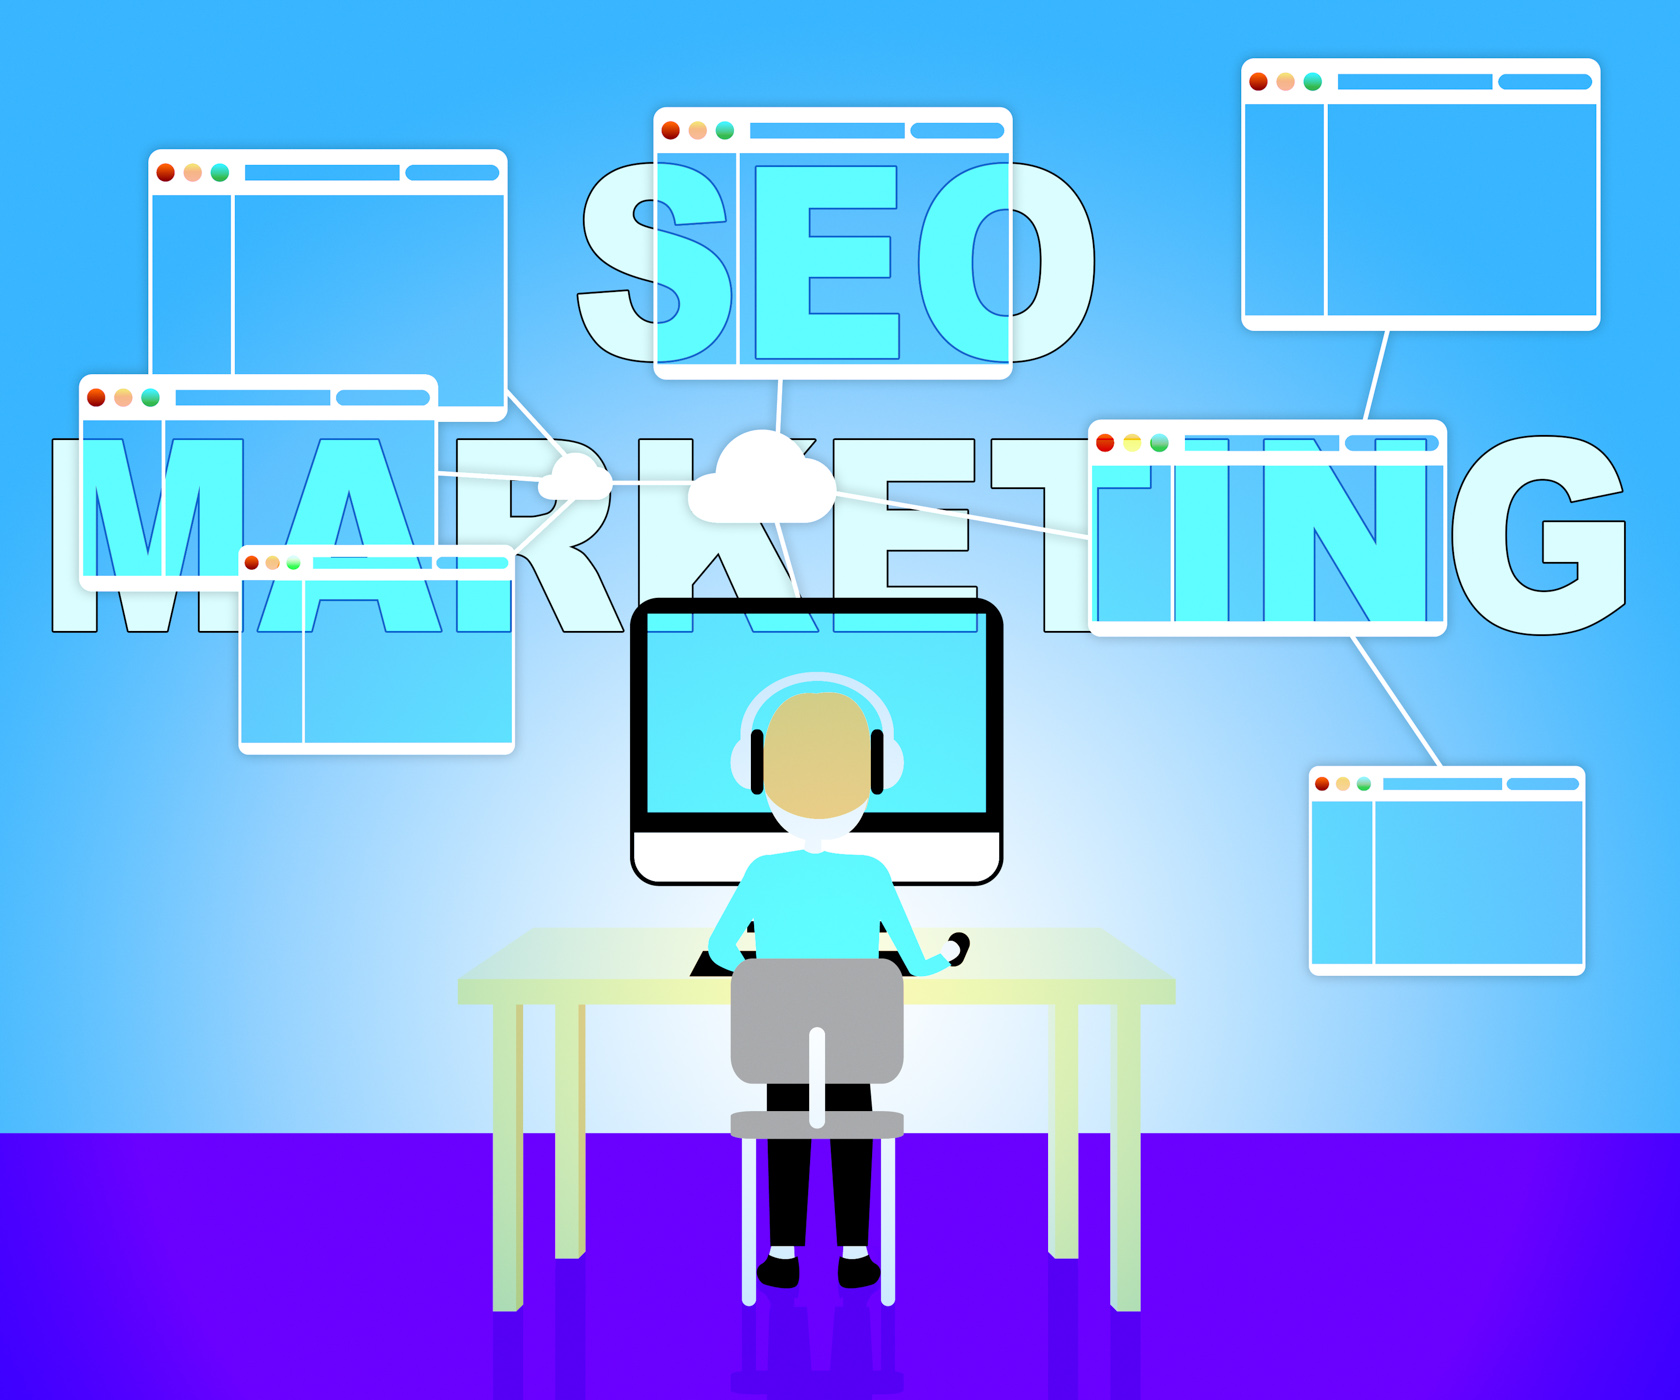 Seo marketing shows search engines 3d illustration photo